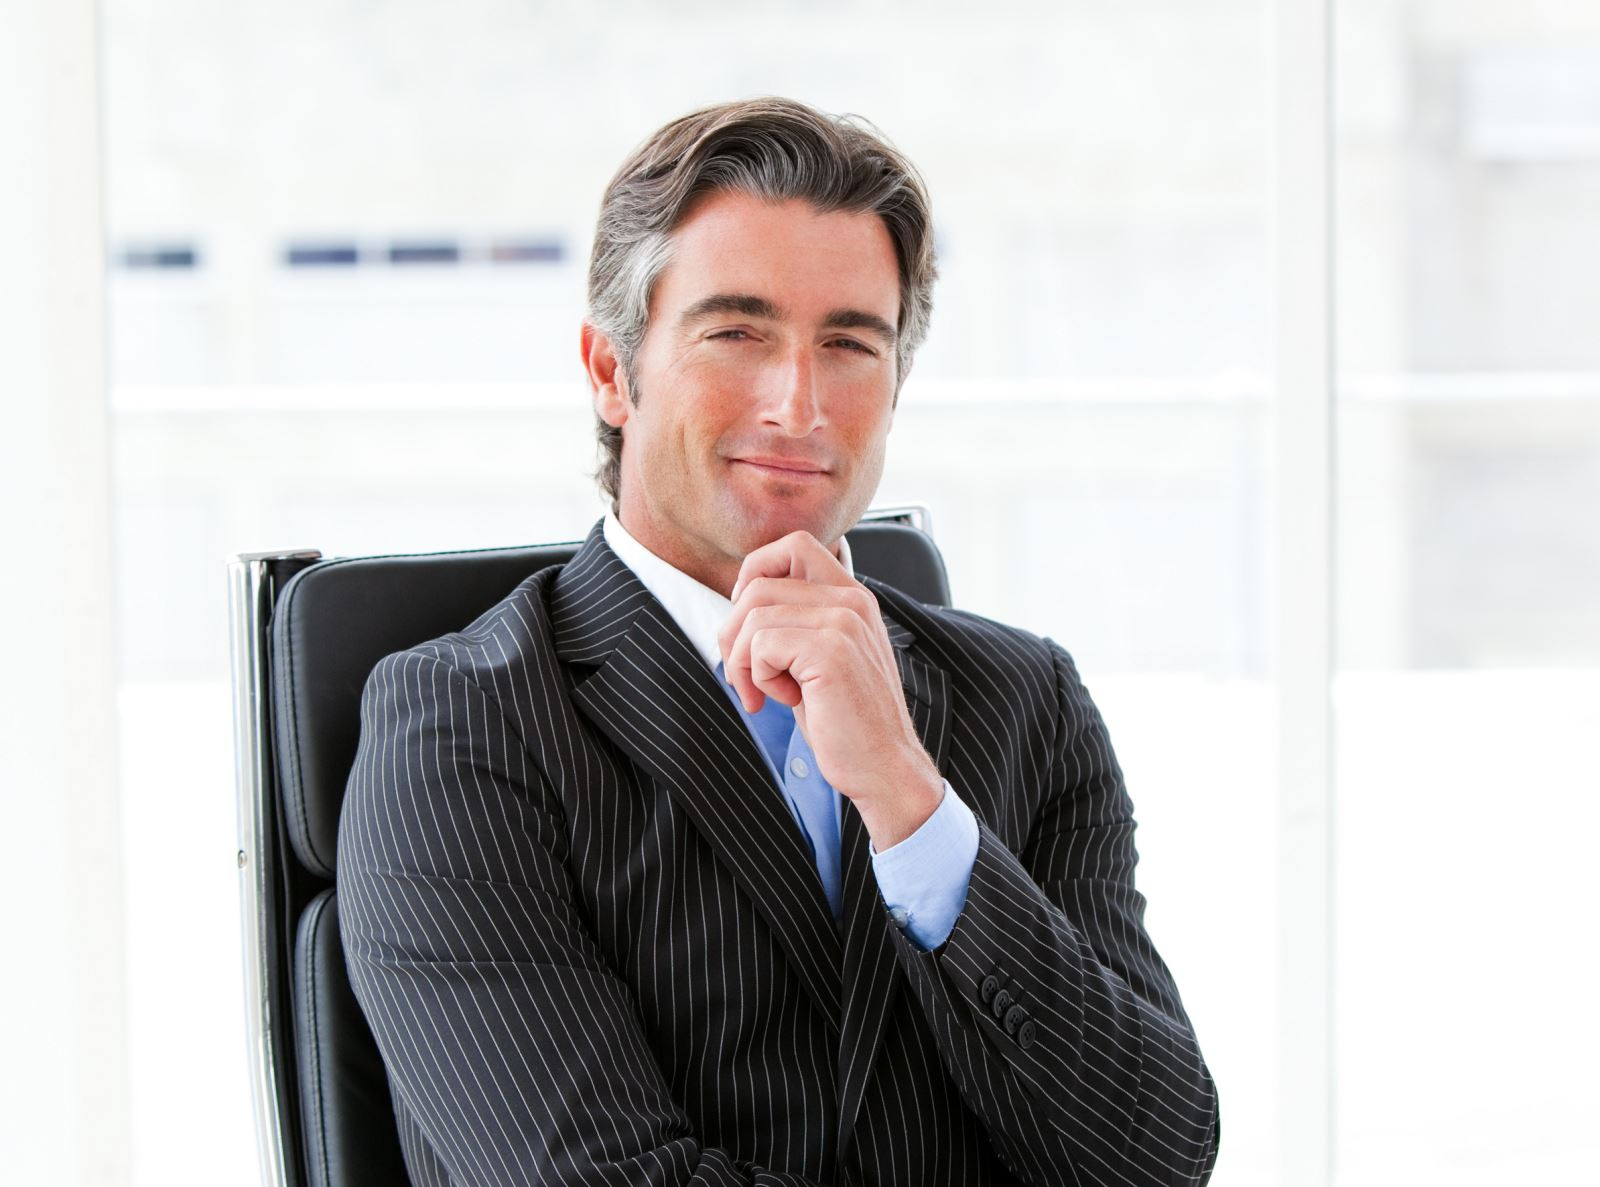 Why HR professionals make great CEOs